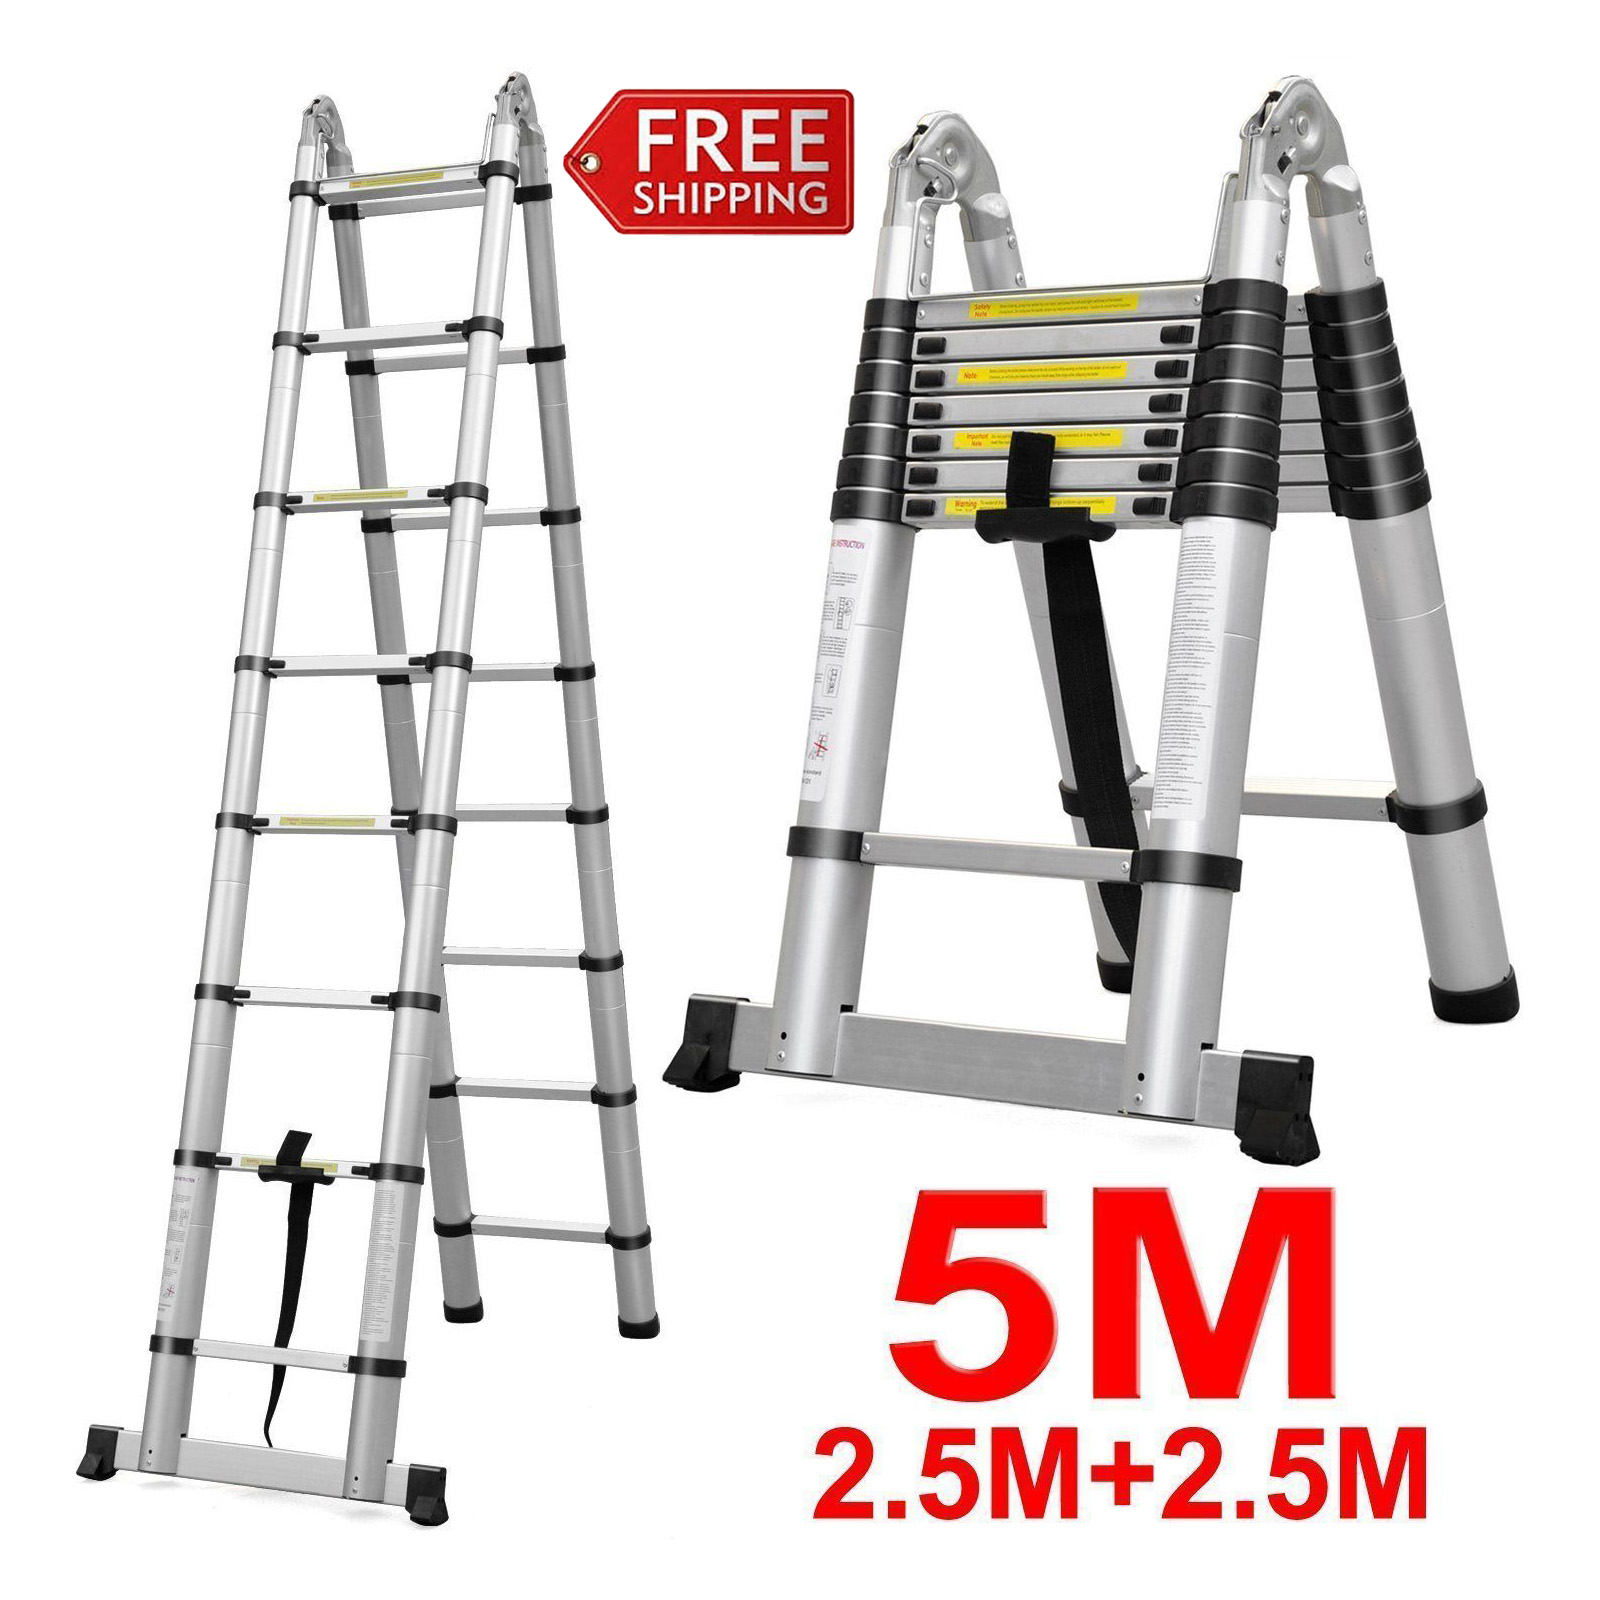 5M 16 Steps A-Frame Ladder Heavy Duty Multi-Purpose Aluminum Folding ...